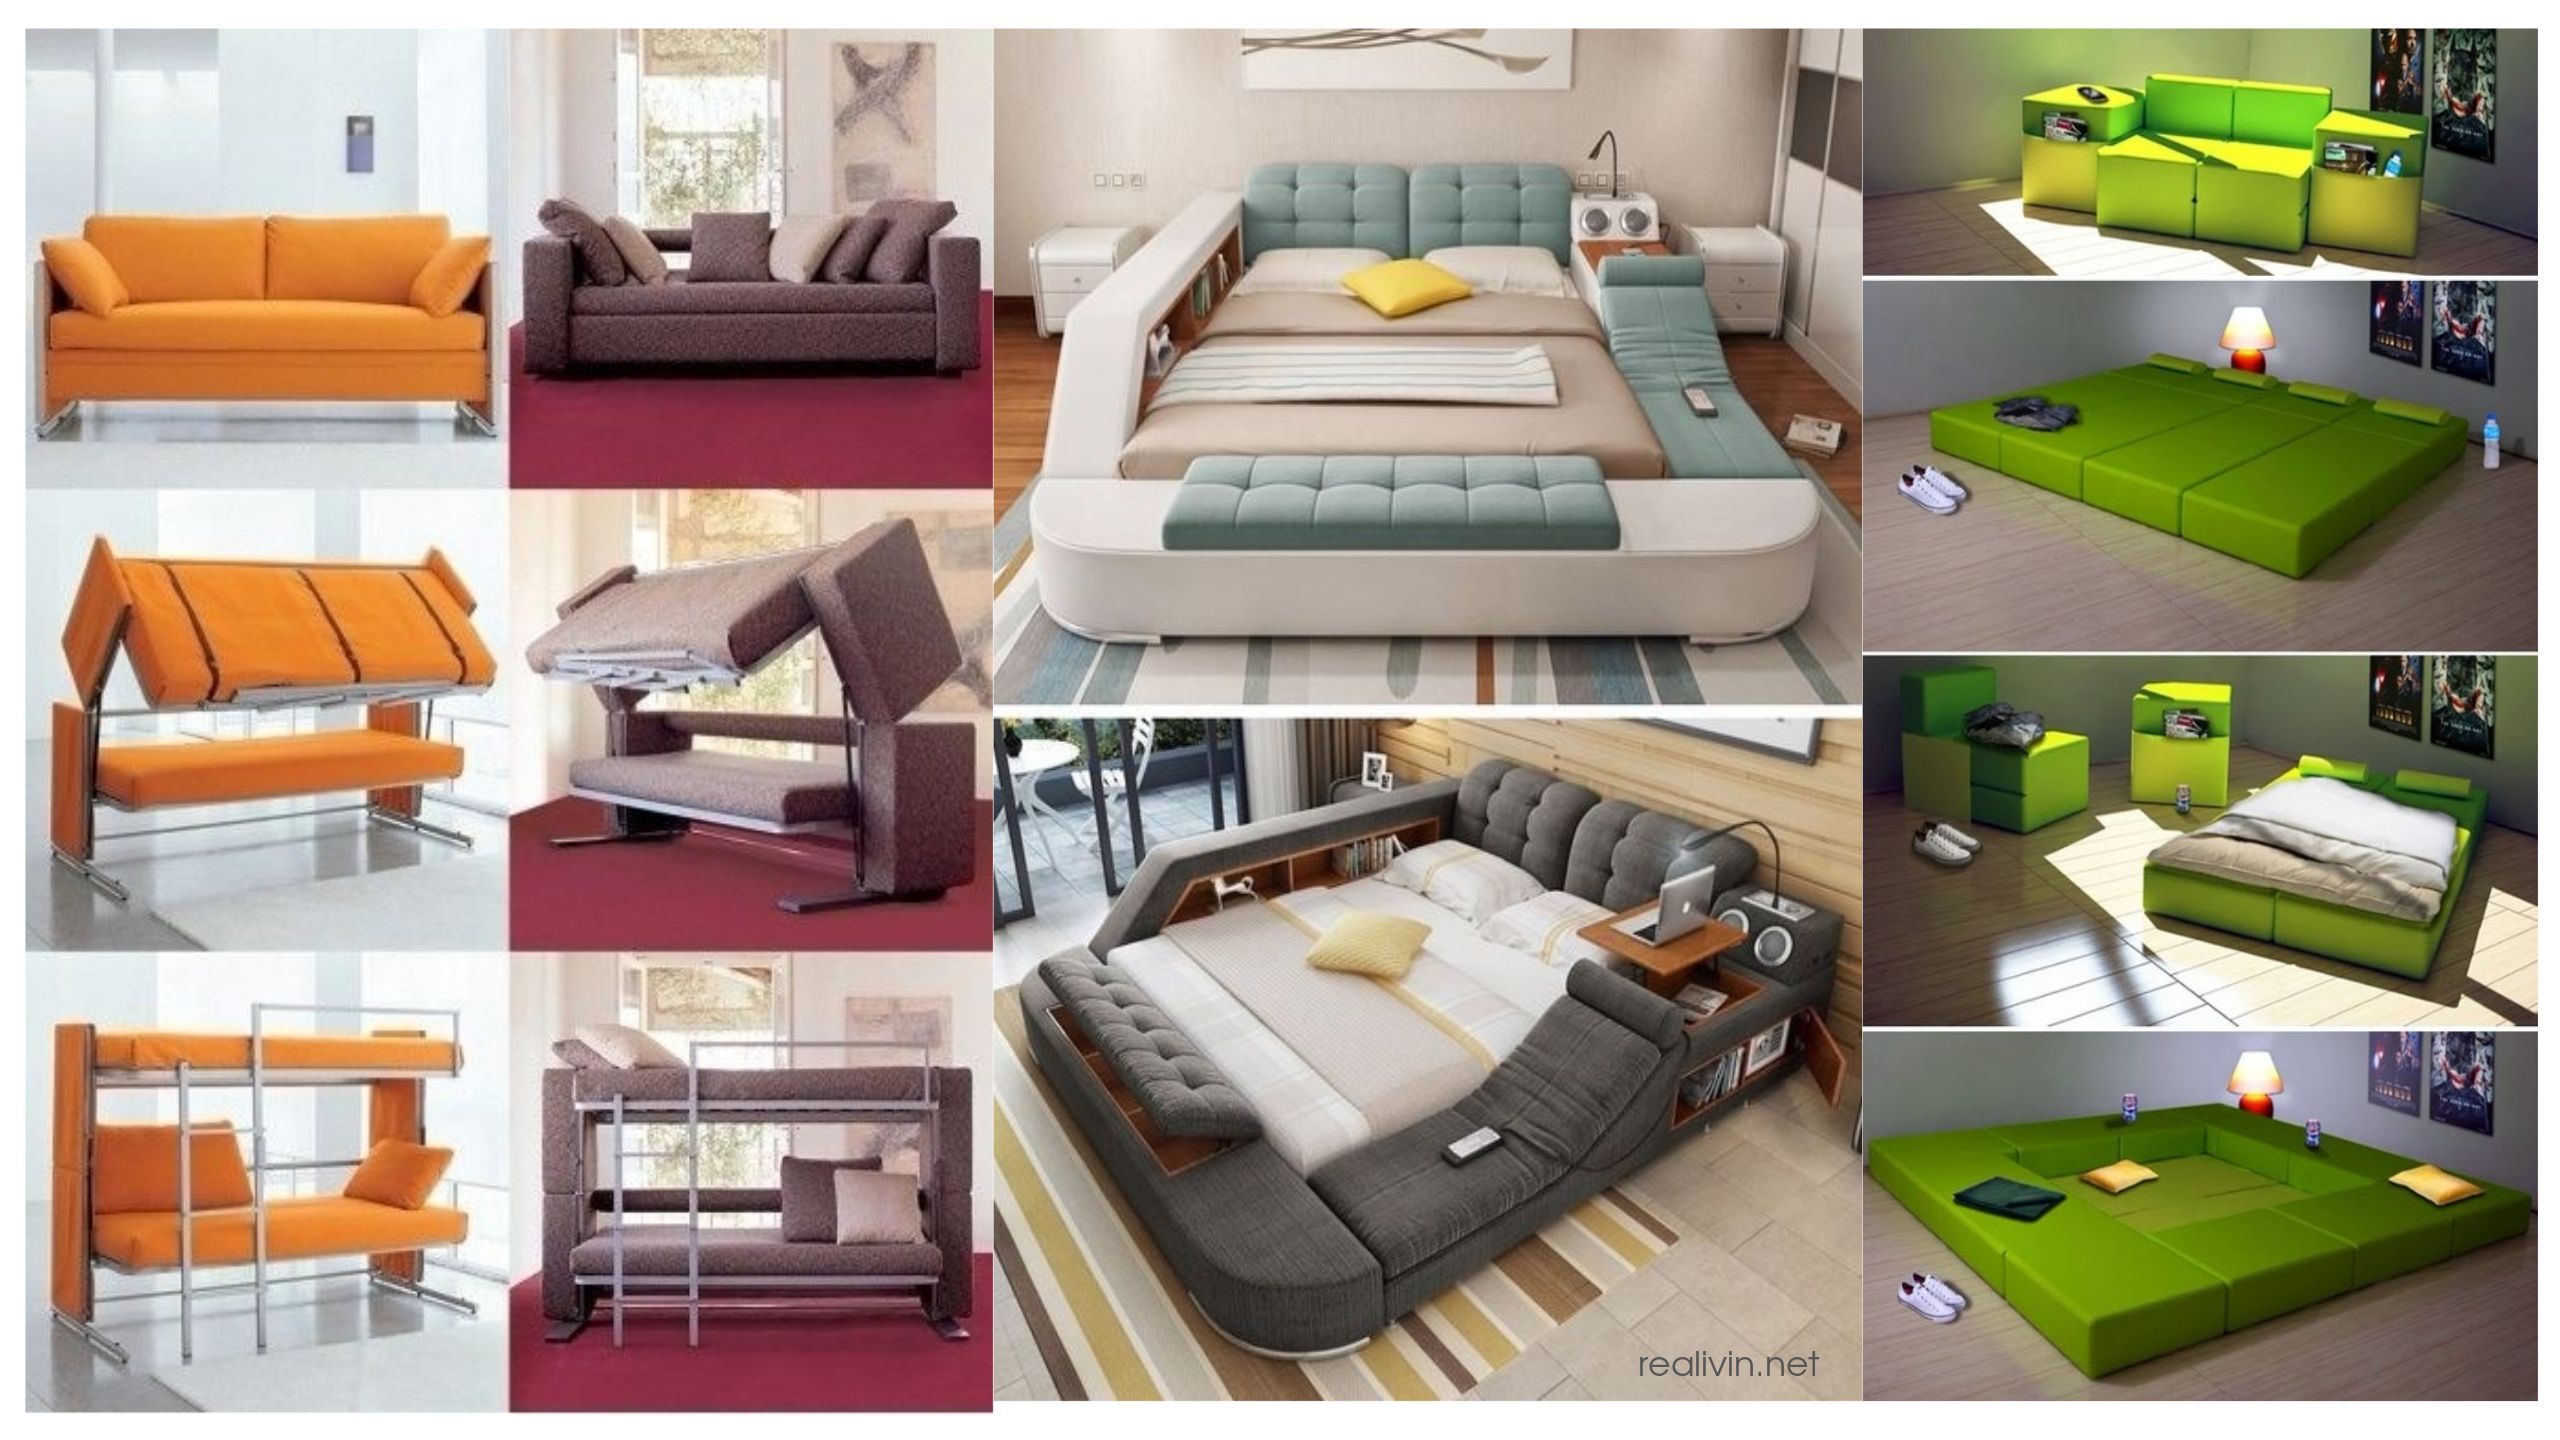 Awesome multifunctional bed for space saving multifunctional